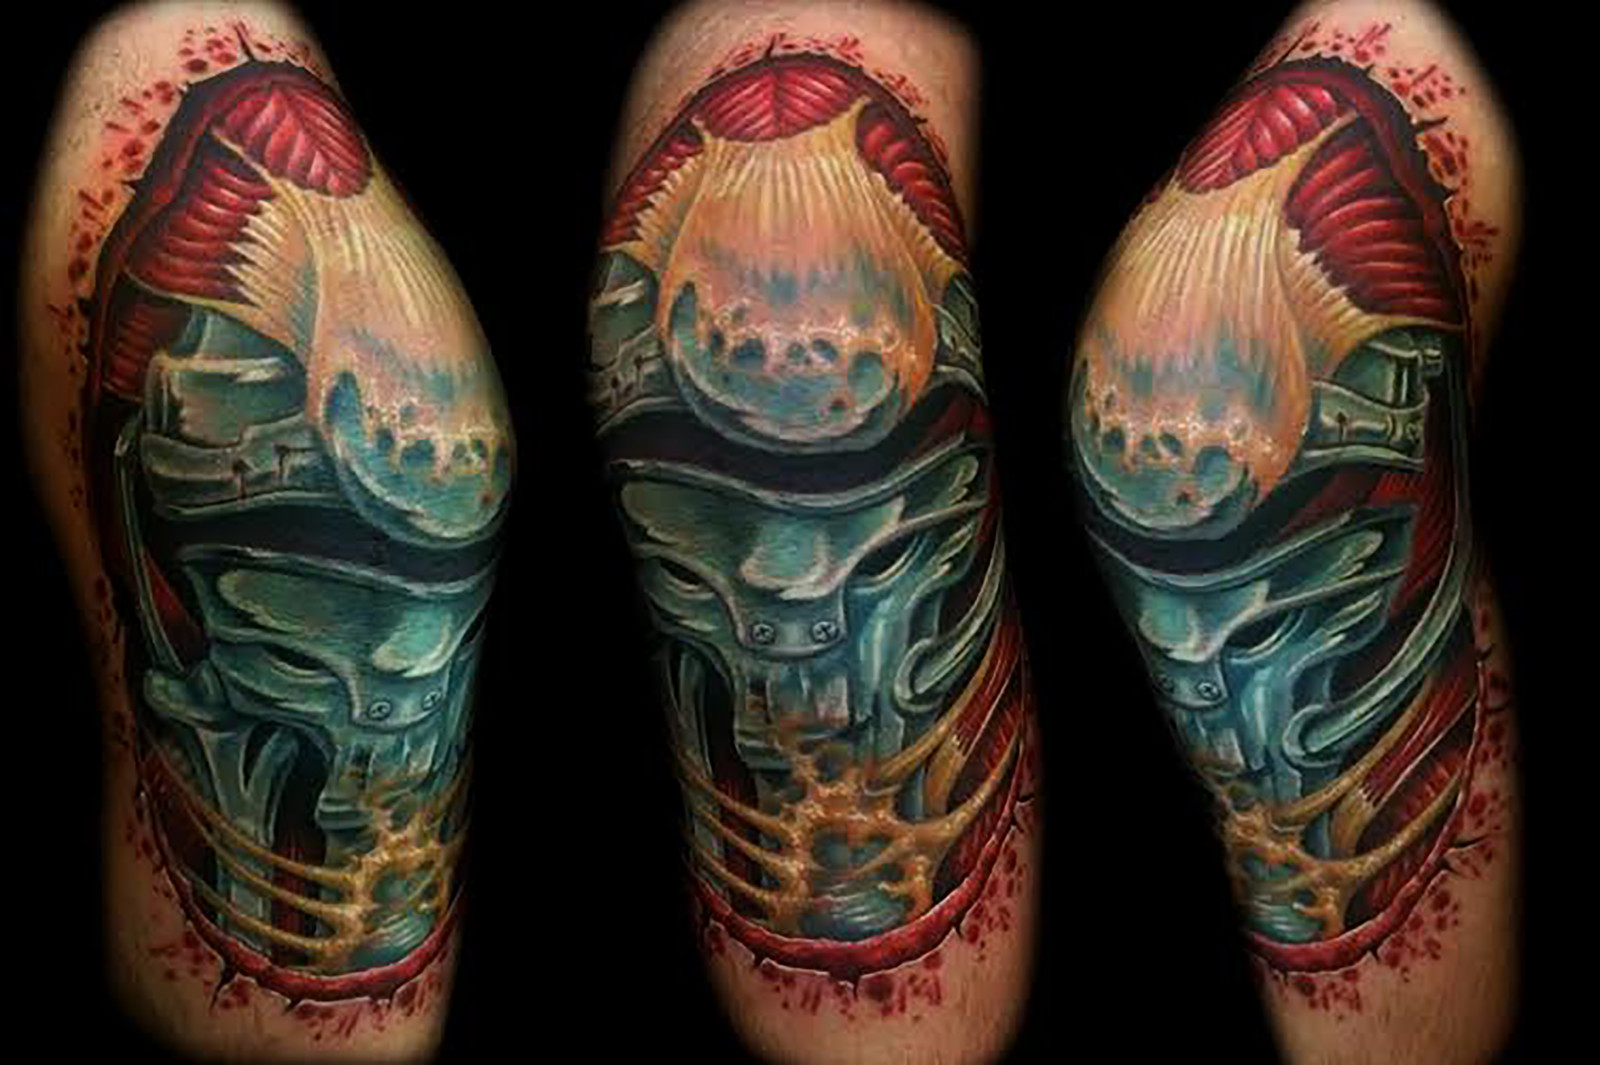 Biomech Skin Rips Tattoos 3d Inner Visions Tattoo Shops In